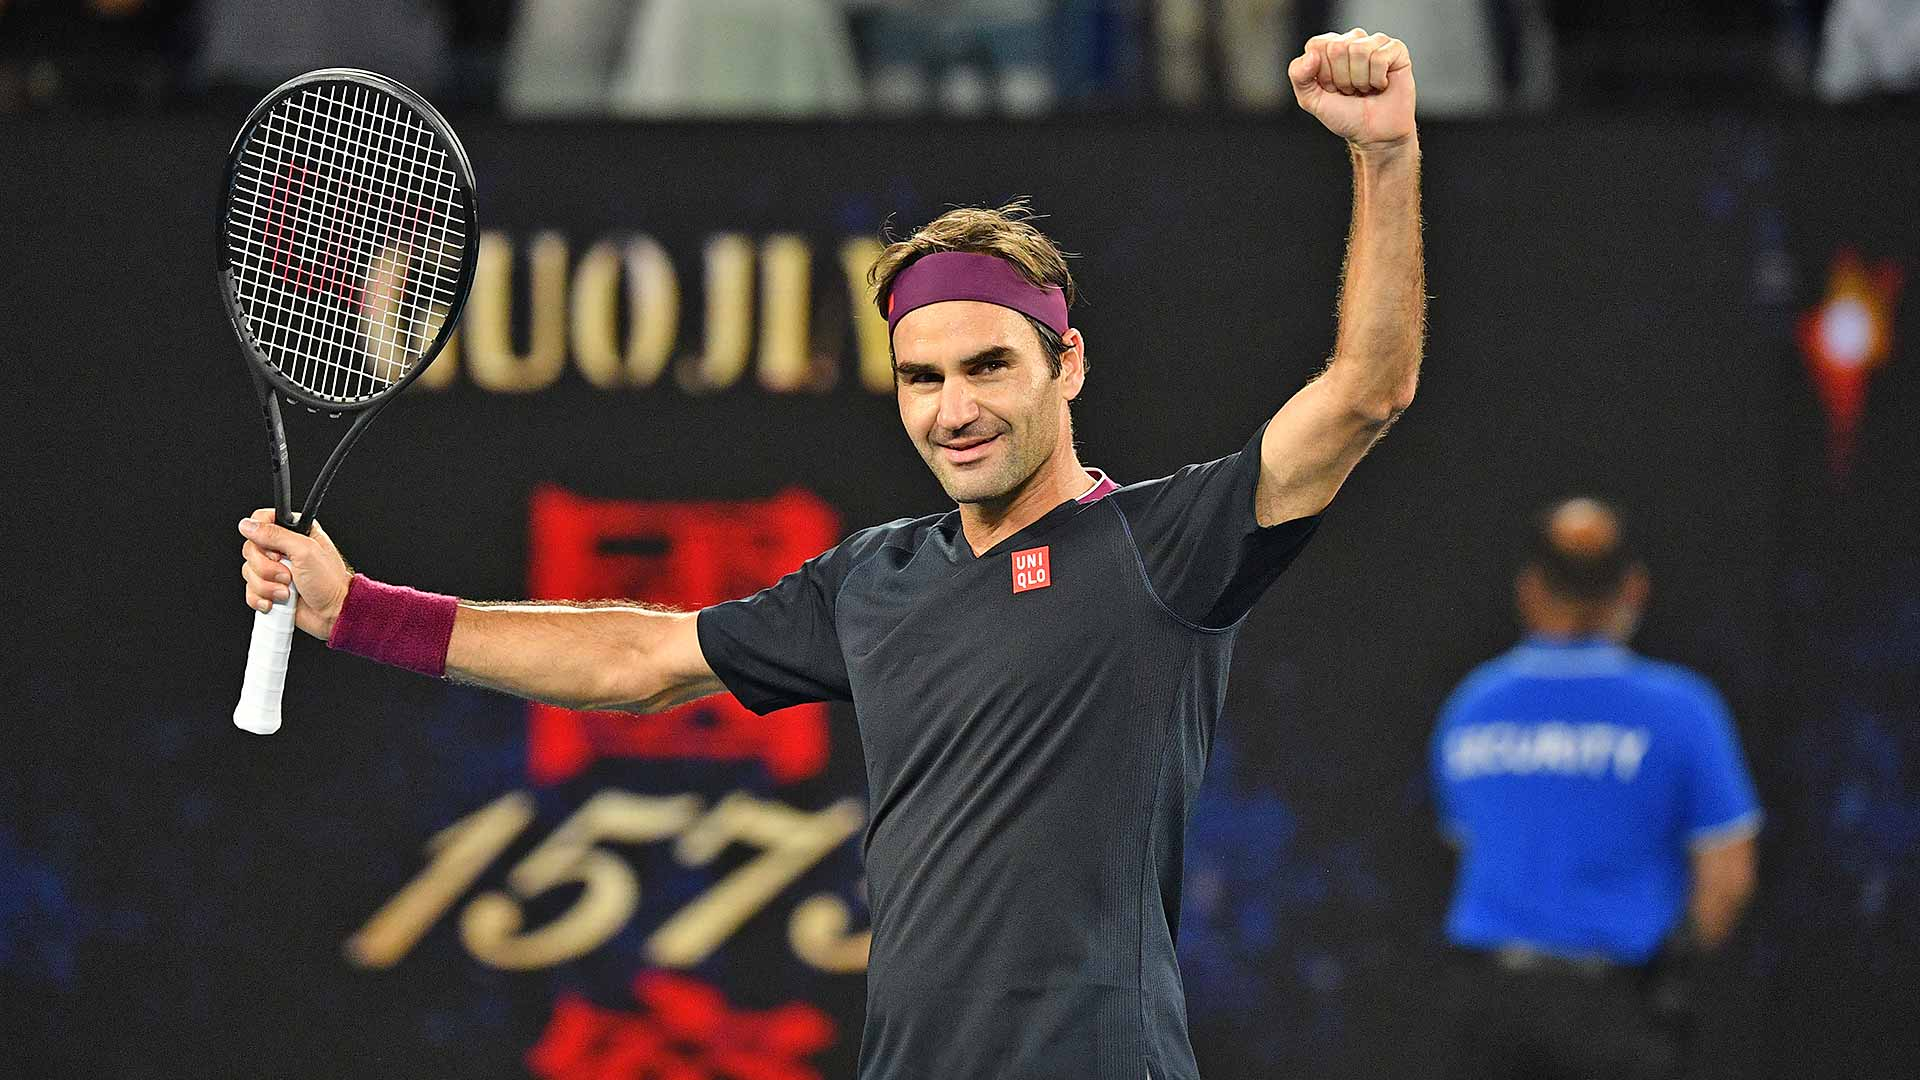 Roger Federer rallies from 4-8 in the deciding set match tie-break to reach the Australian Open fourth round.